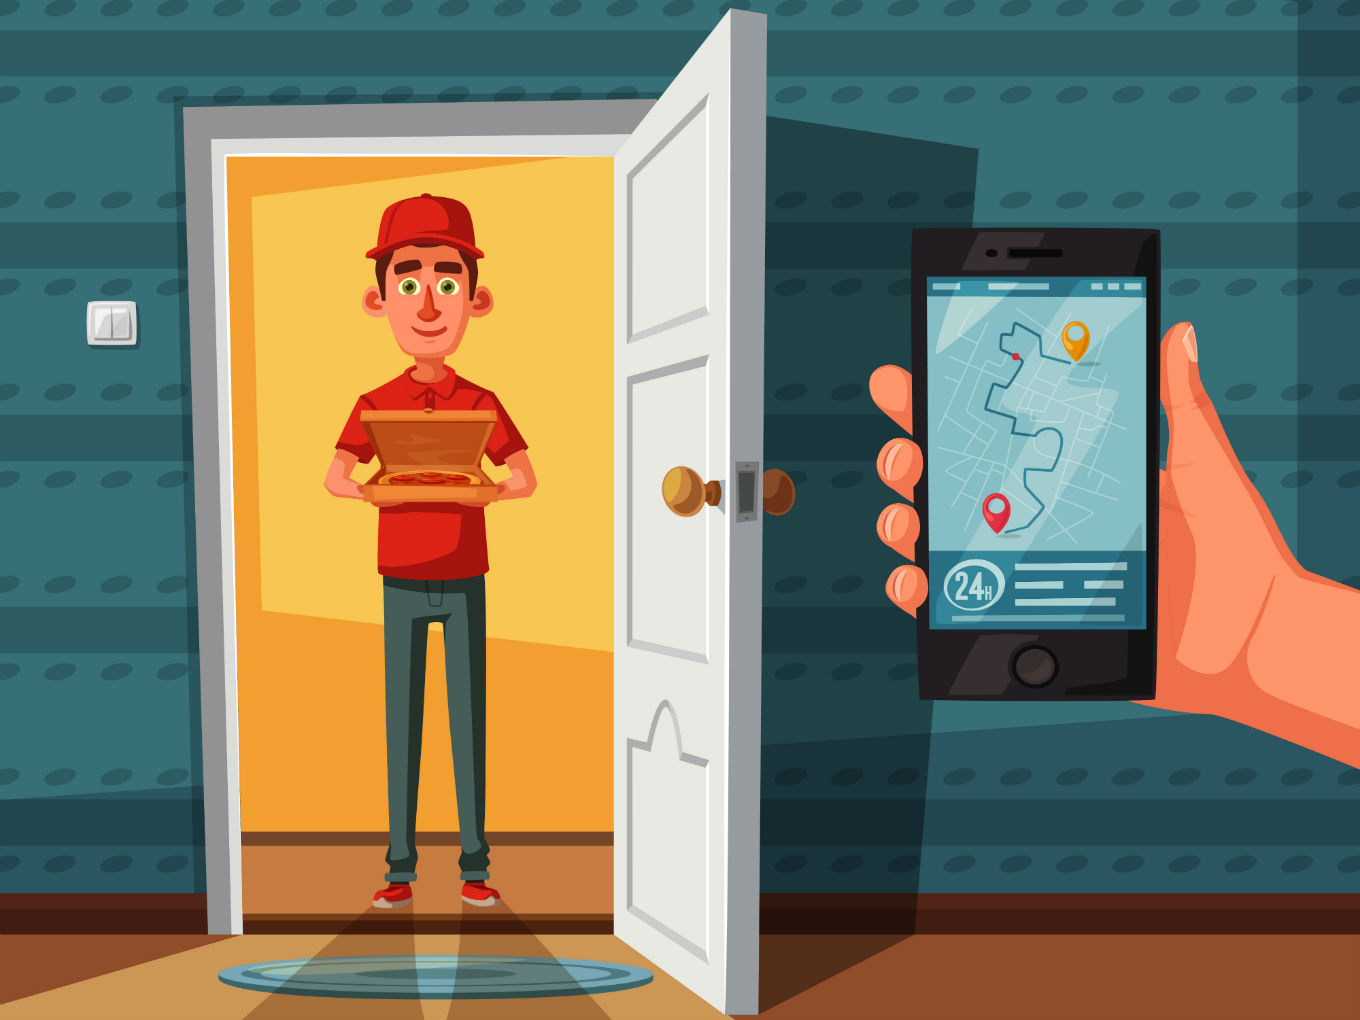 How Do Online Food Delivery Services Like Zomato, Swiggy Work?